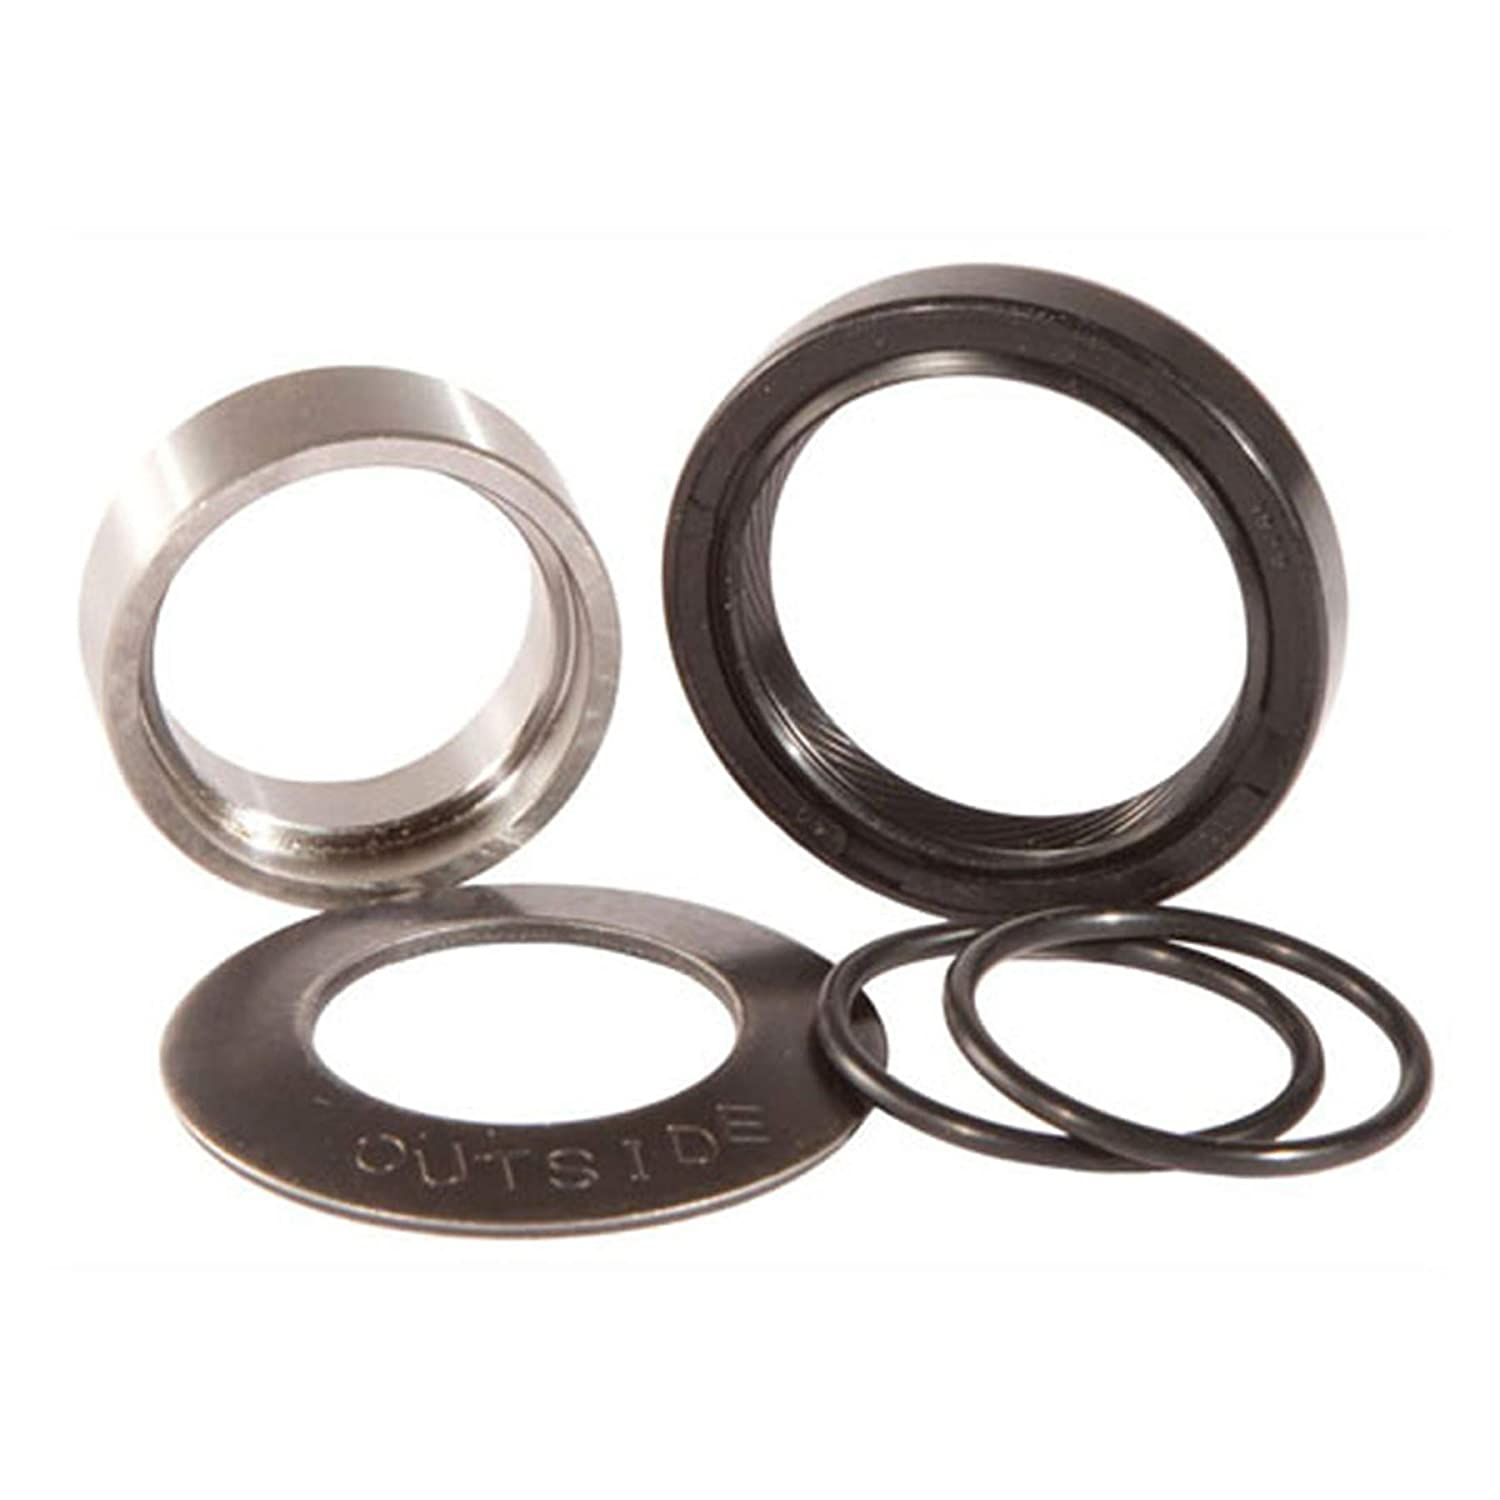 Countershaft Seal Kit For 2002 Honda CRF450R Offroad Motorcycle